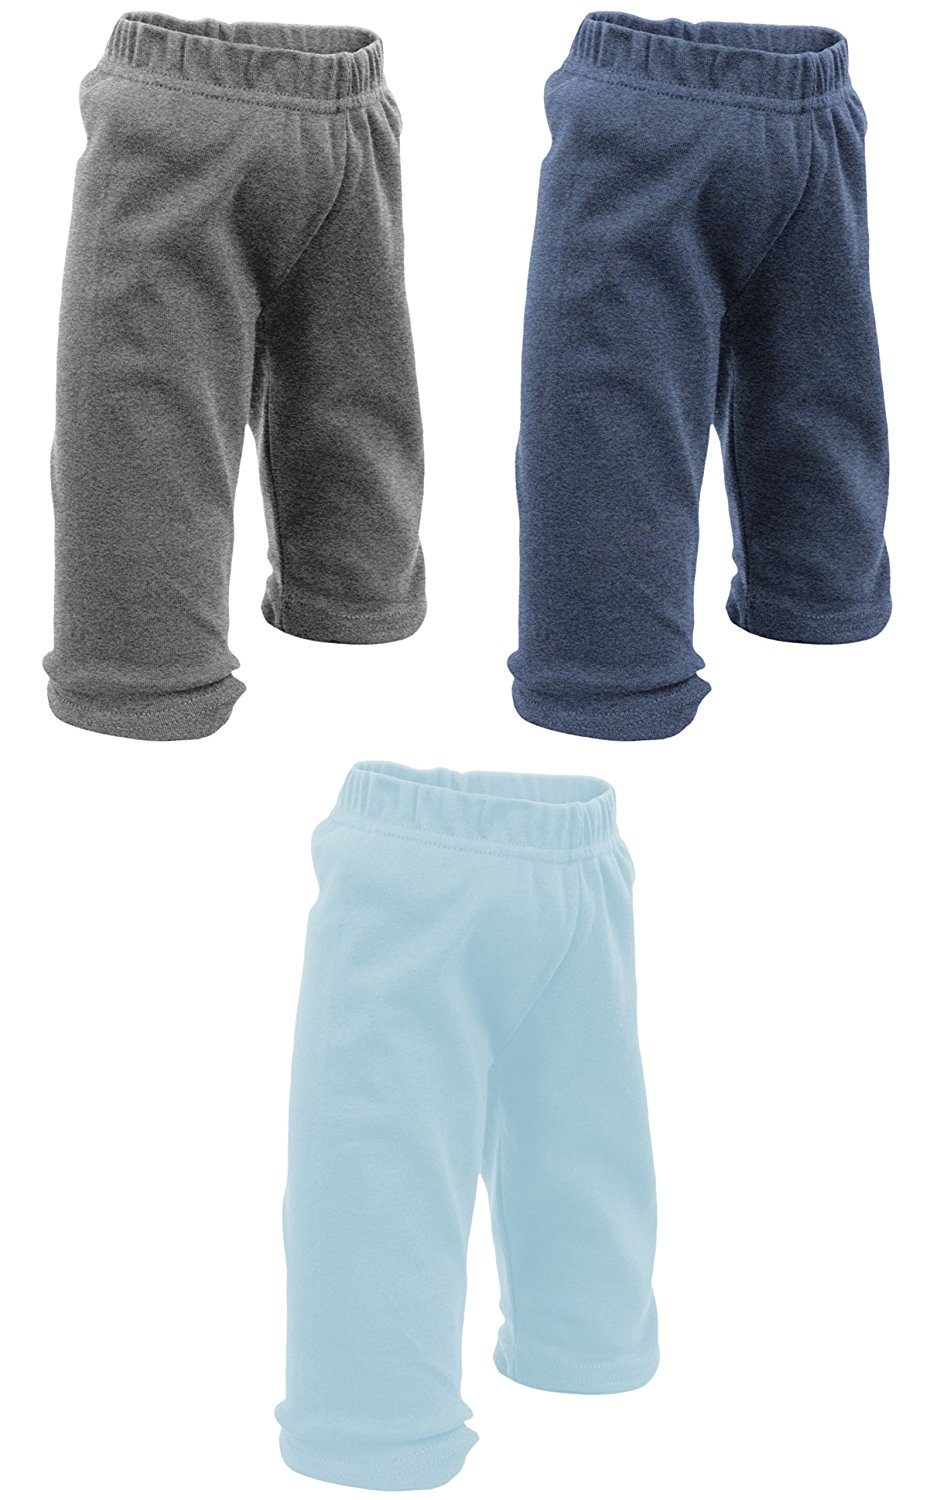 3 Pack Baby PantsCute Baby Clothes BULKBoys /& Girls!by Mato /& Hash